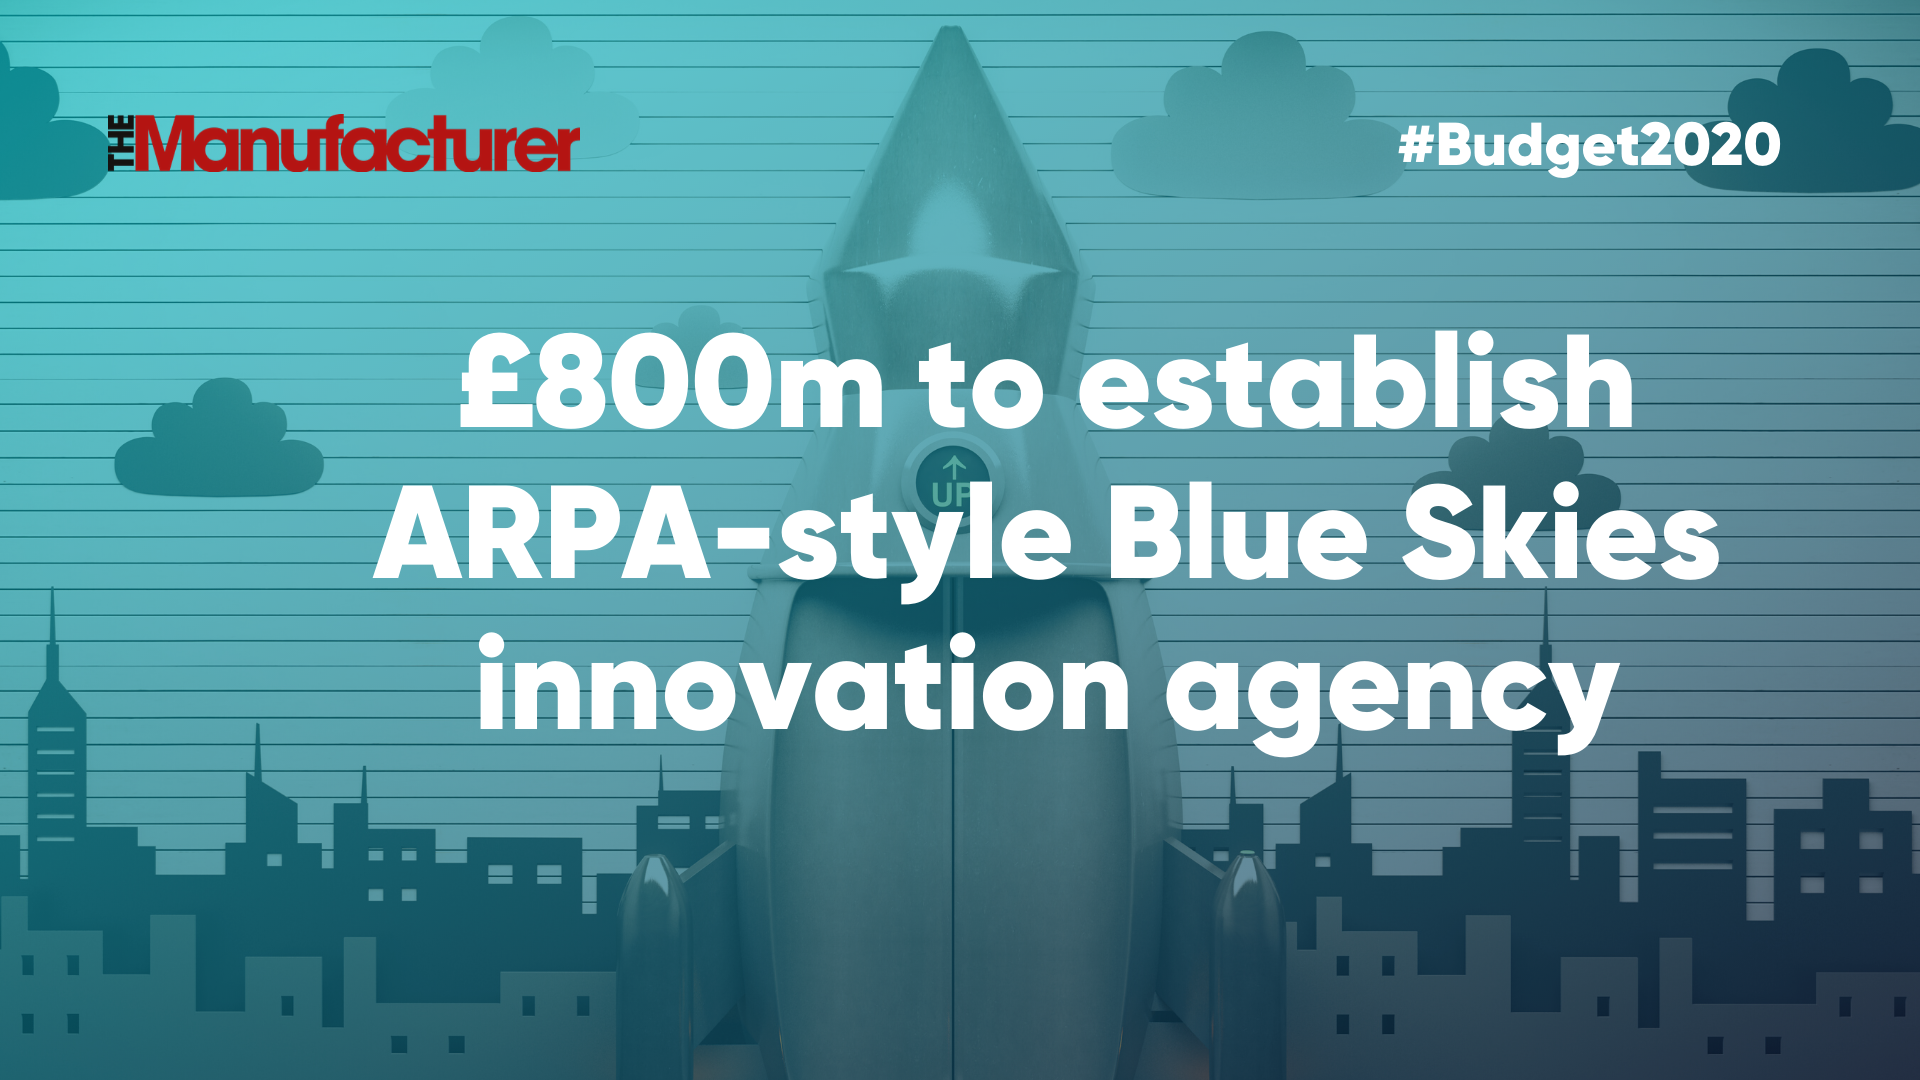 Budget 2020 - ARPA-style innovation agencies